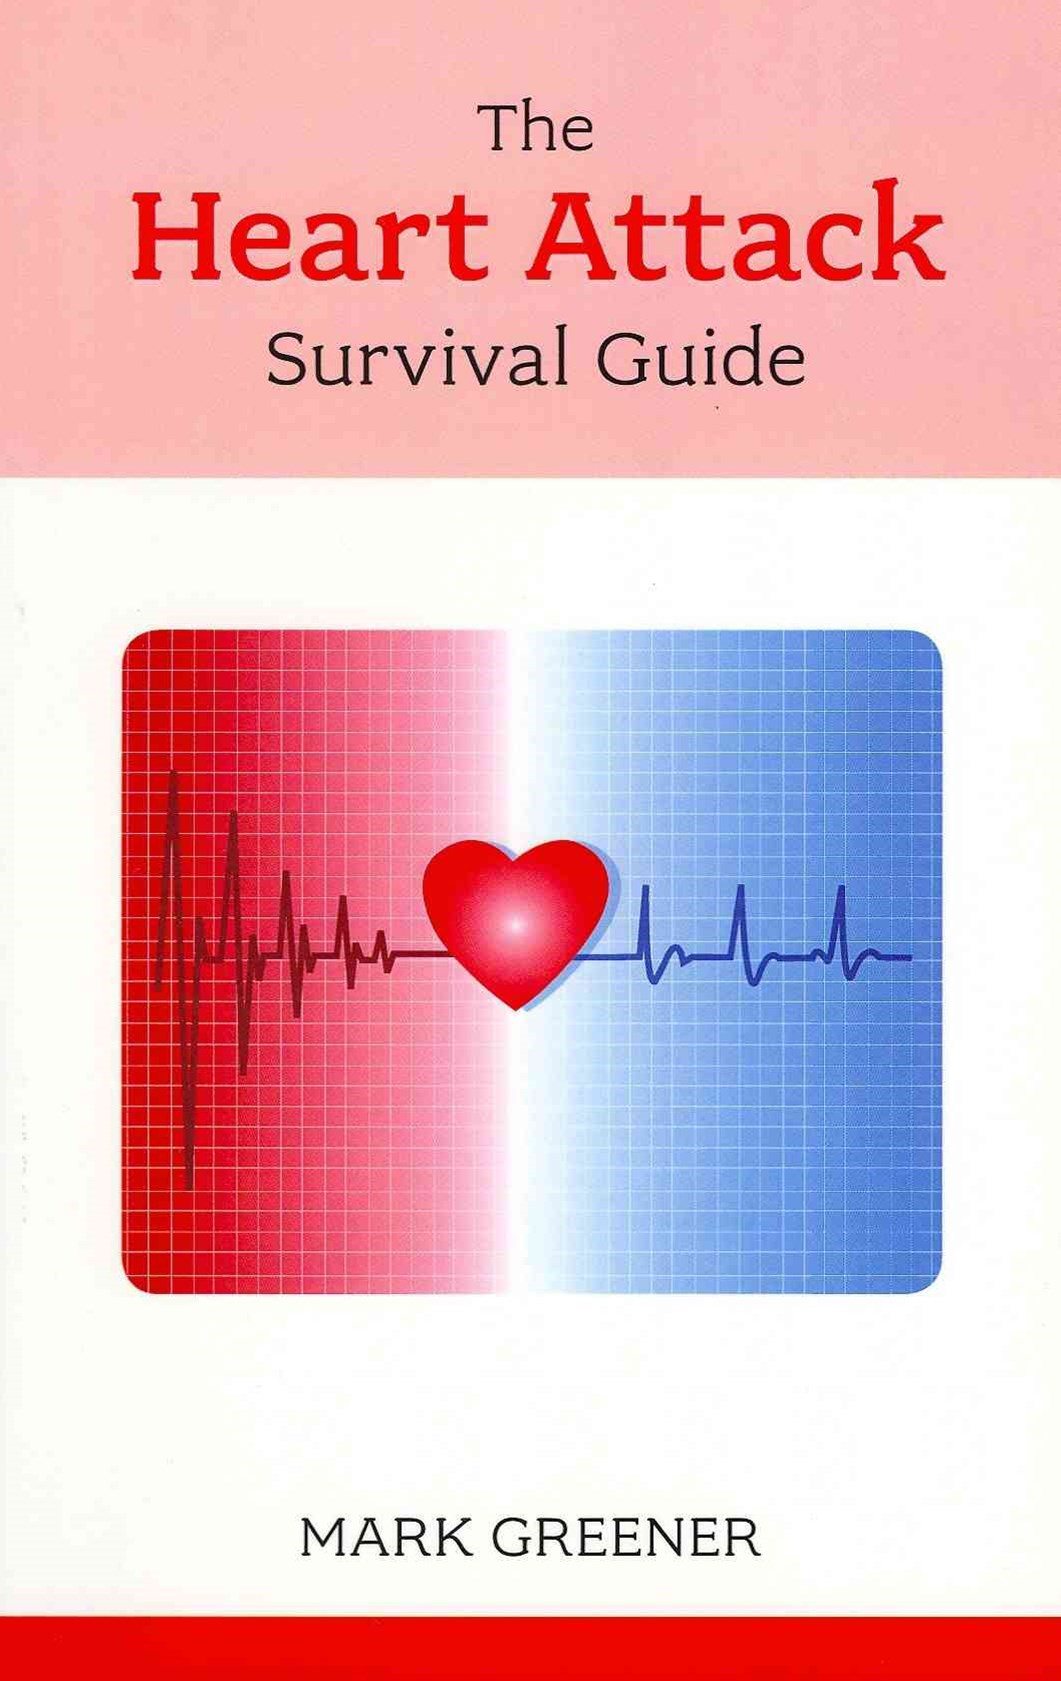 Heart Attack Survival Guide